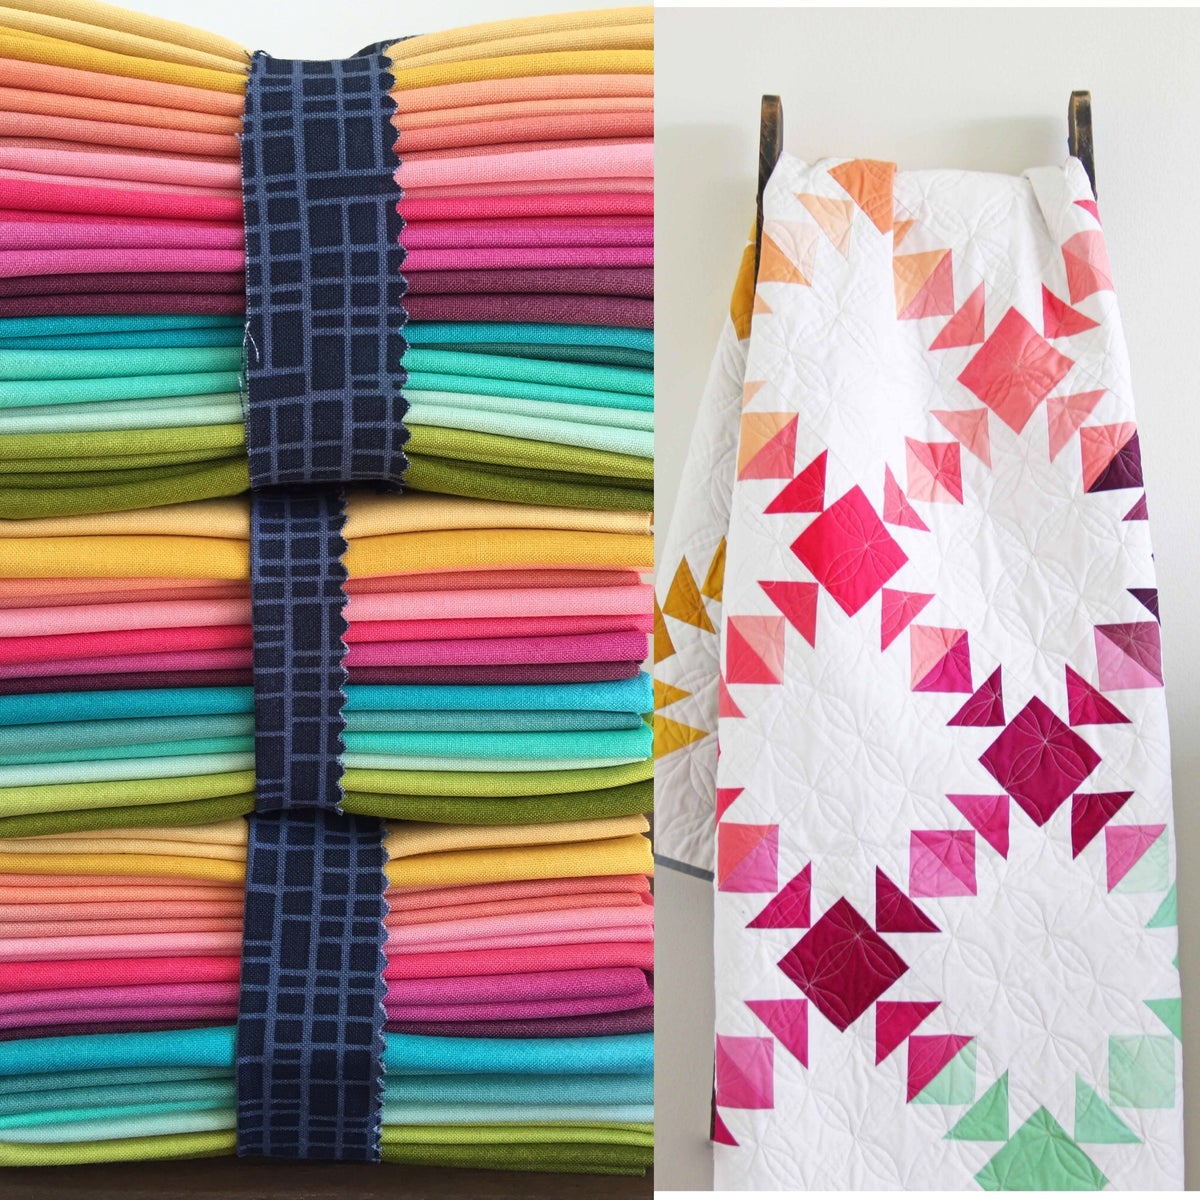 V And Co Prism Ombr 233 Fabric Bundle With Paper Pattern